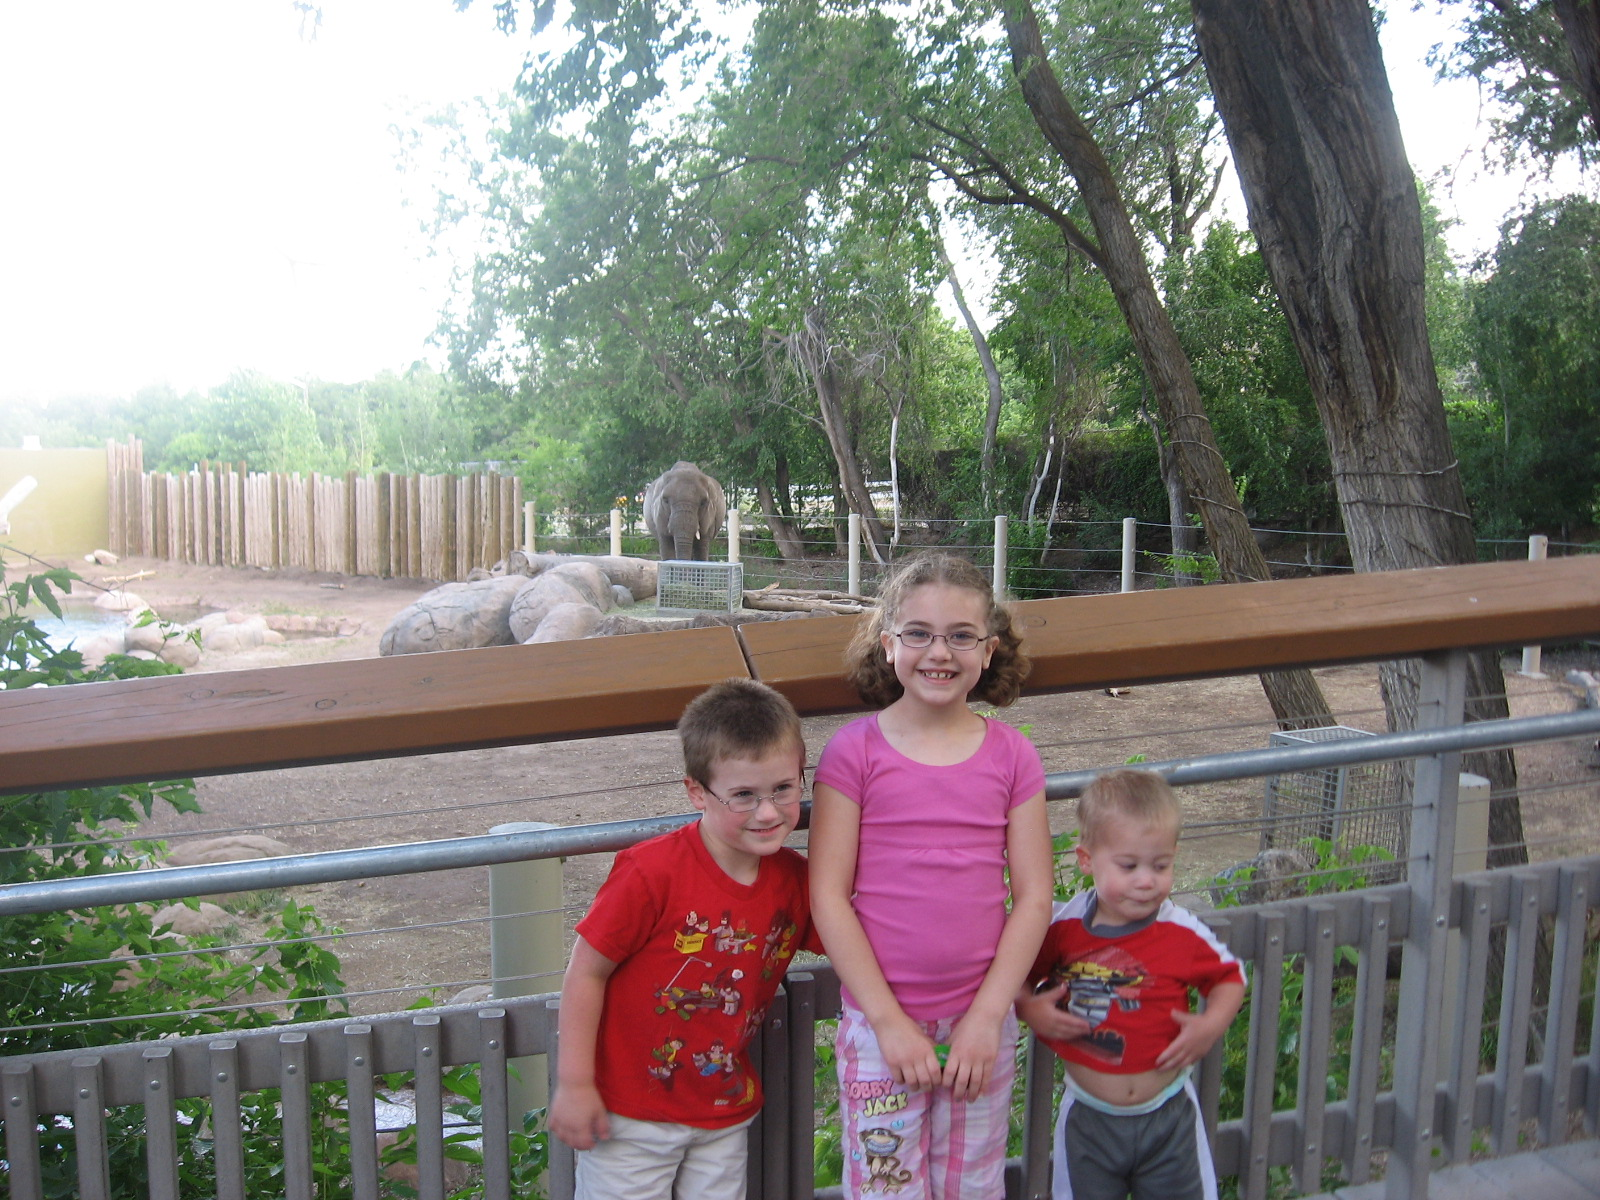 The Little Ladies: Darrington Family Trip-Camping Style